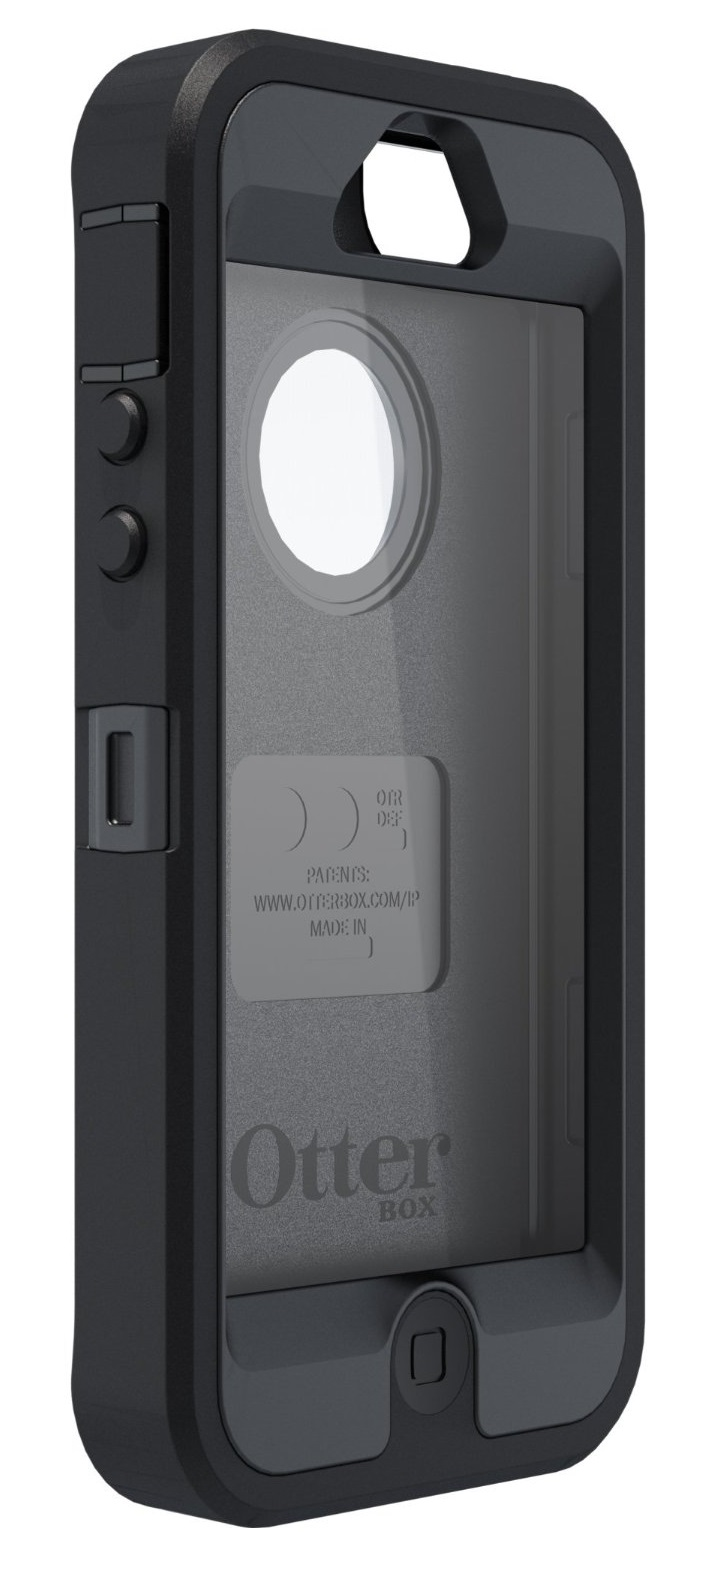 iphone 5s otterbox cases otterbox defender belt holster for apple iphone 5 14839